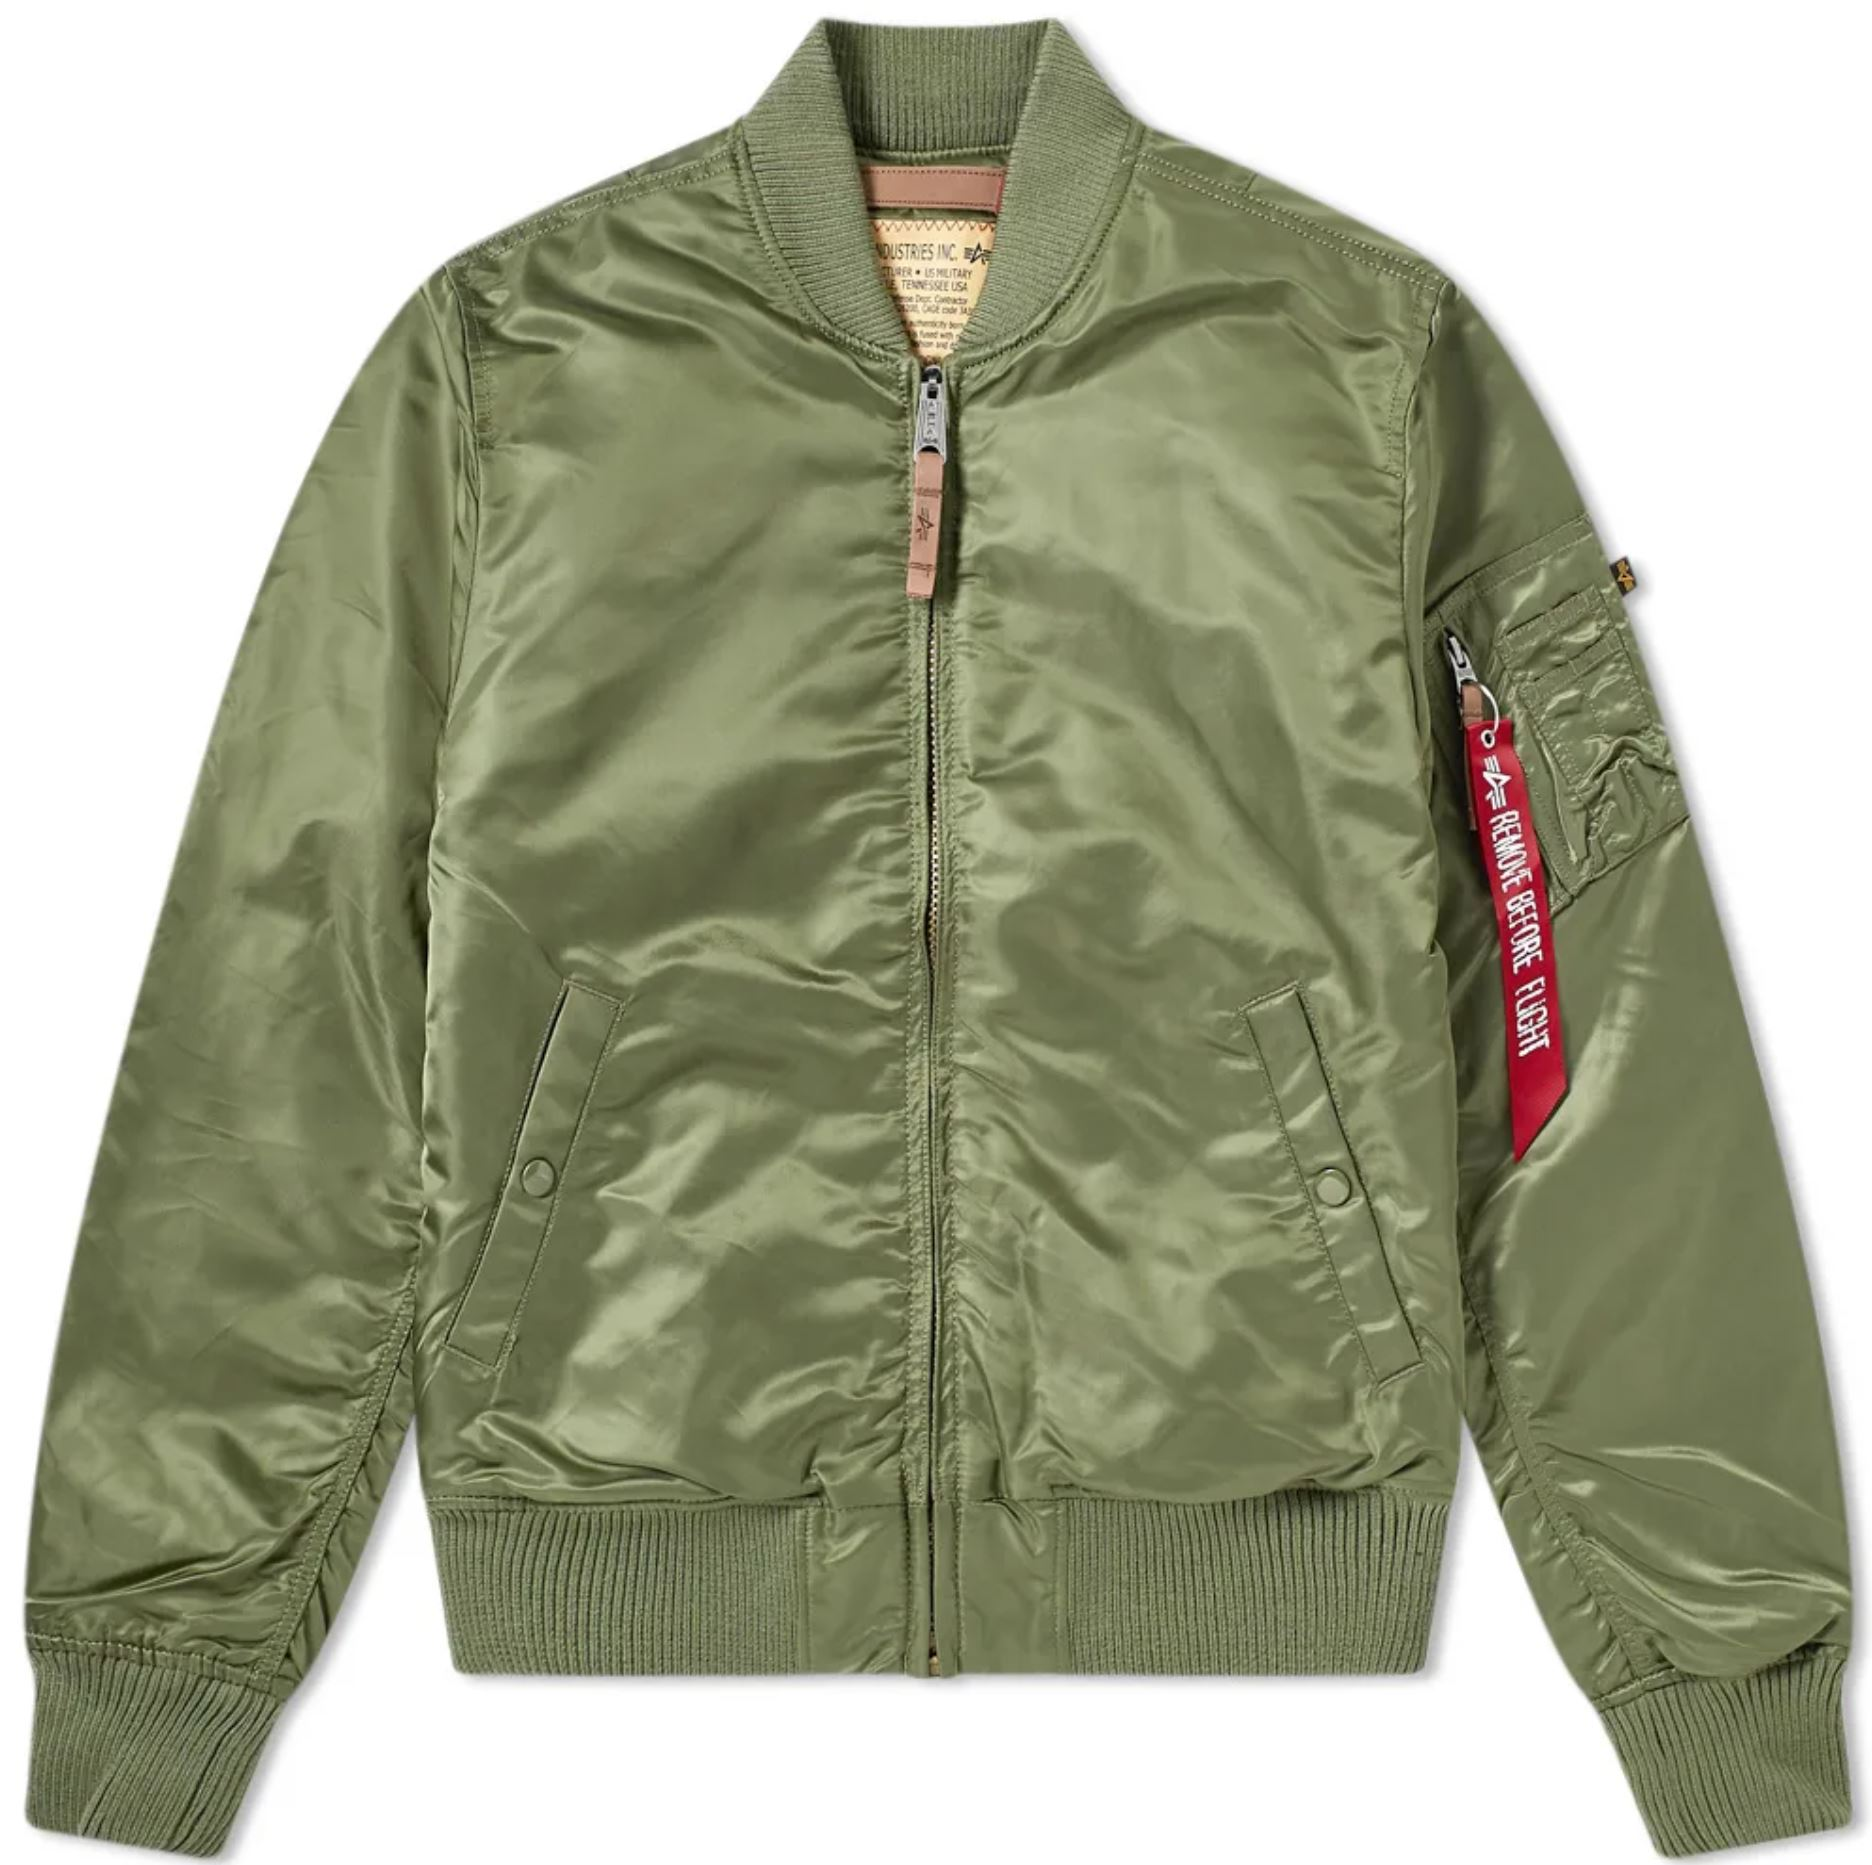 Bomber Jacket from endclothing.com